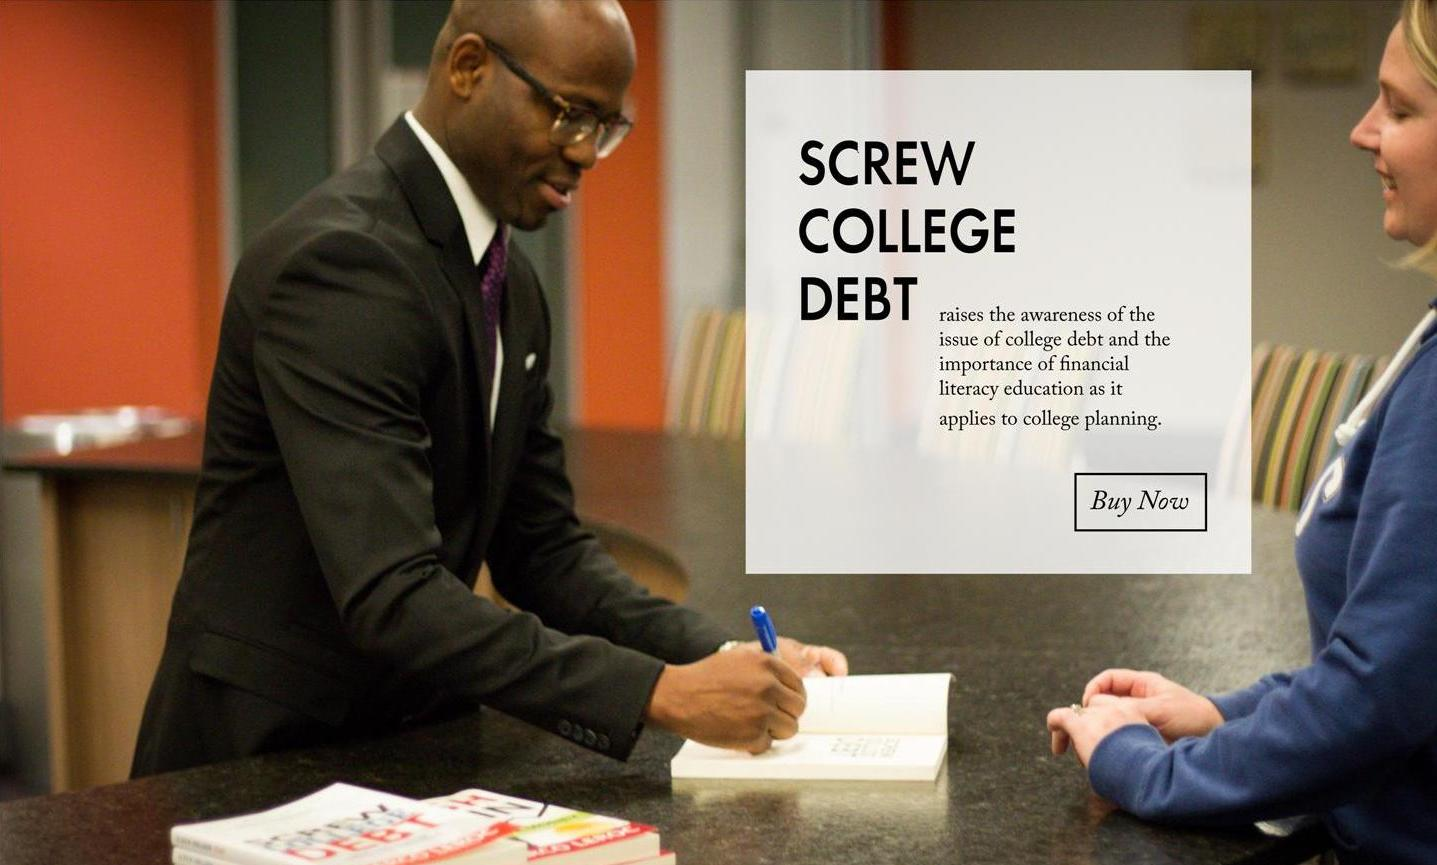 screw-college-debt-img1